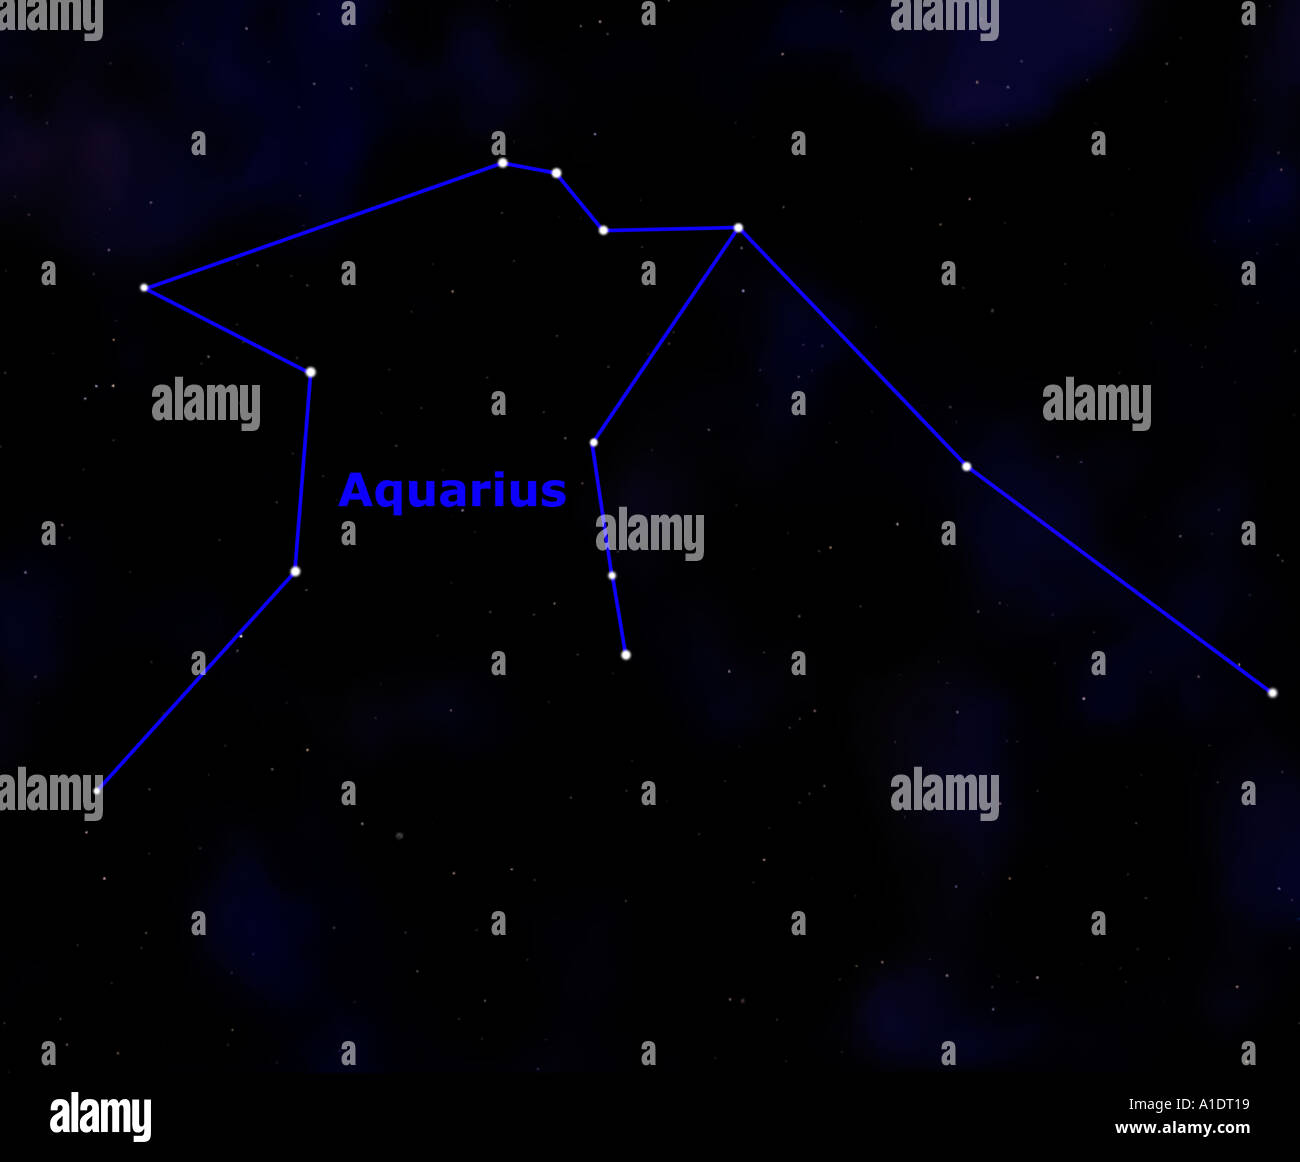 Aquarius Constellation Showing Name And Sign - Stock Image